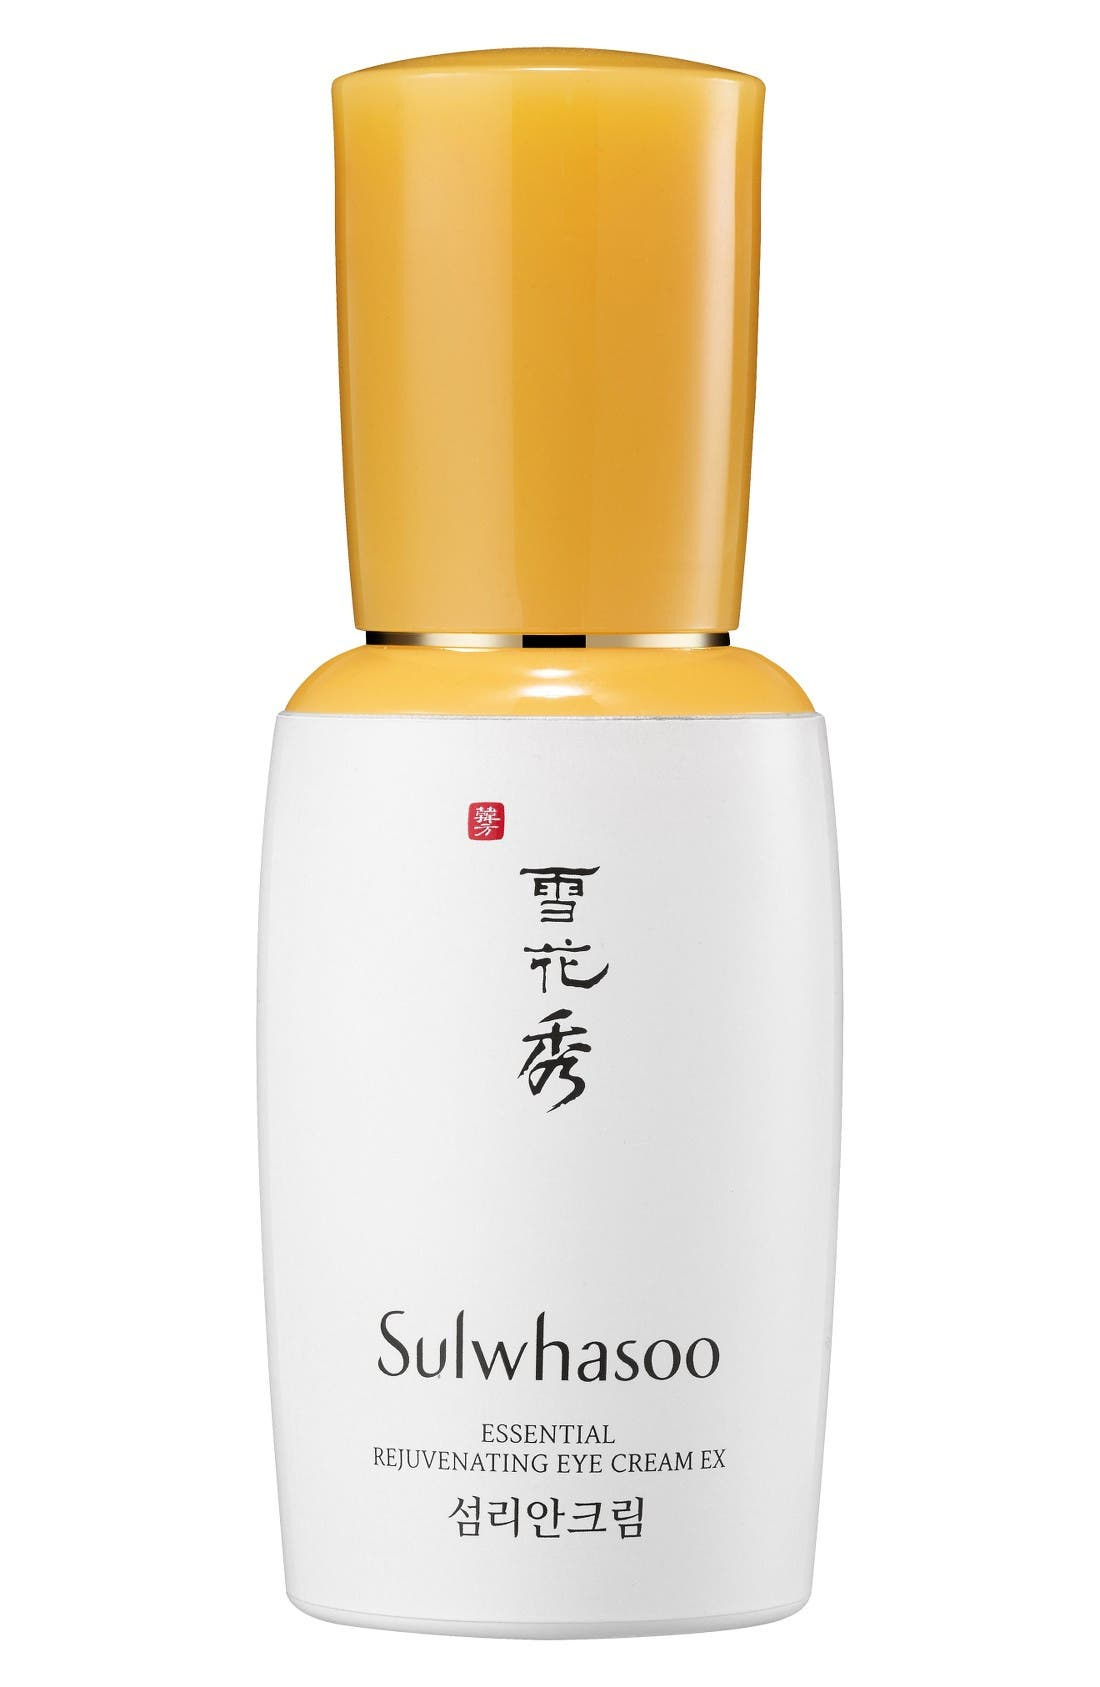 Alternate Image 1 Selected - Sulwhasoo Essential Rejuvenating Eye Cream EX